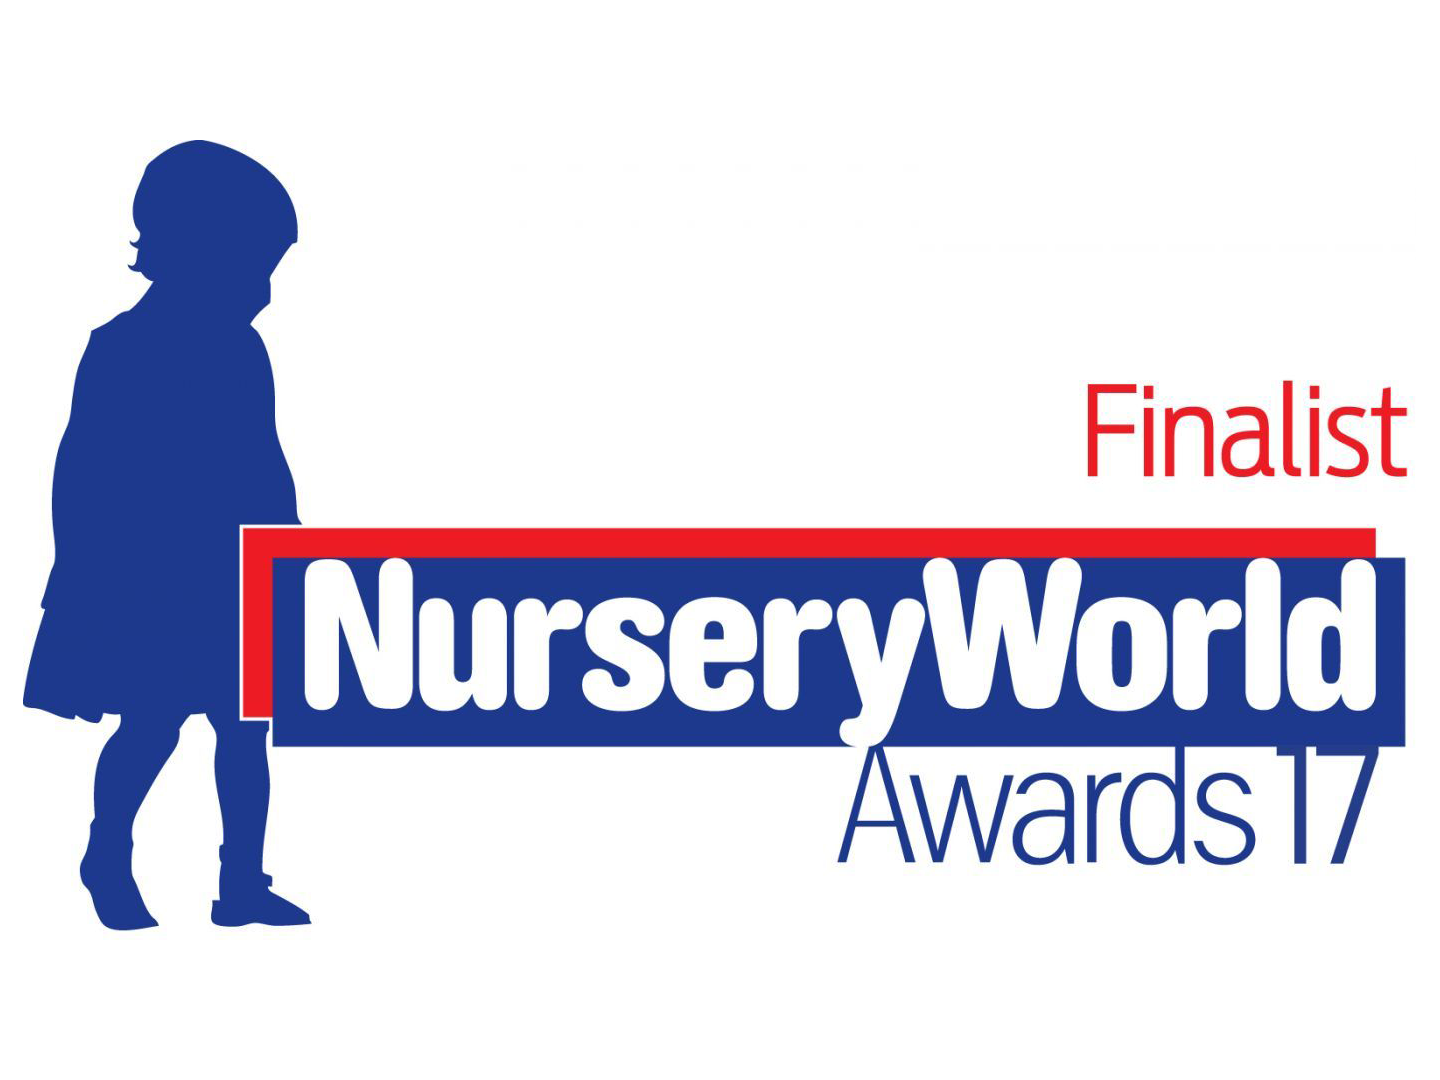 Fireflies Nursery Award Winner